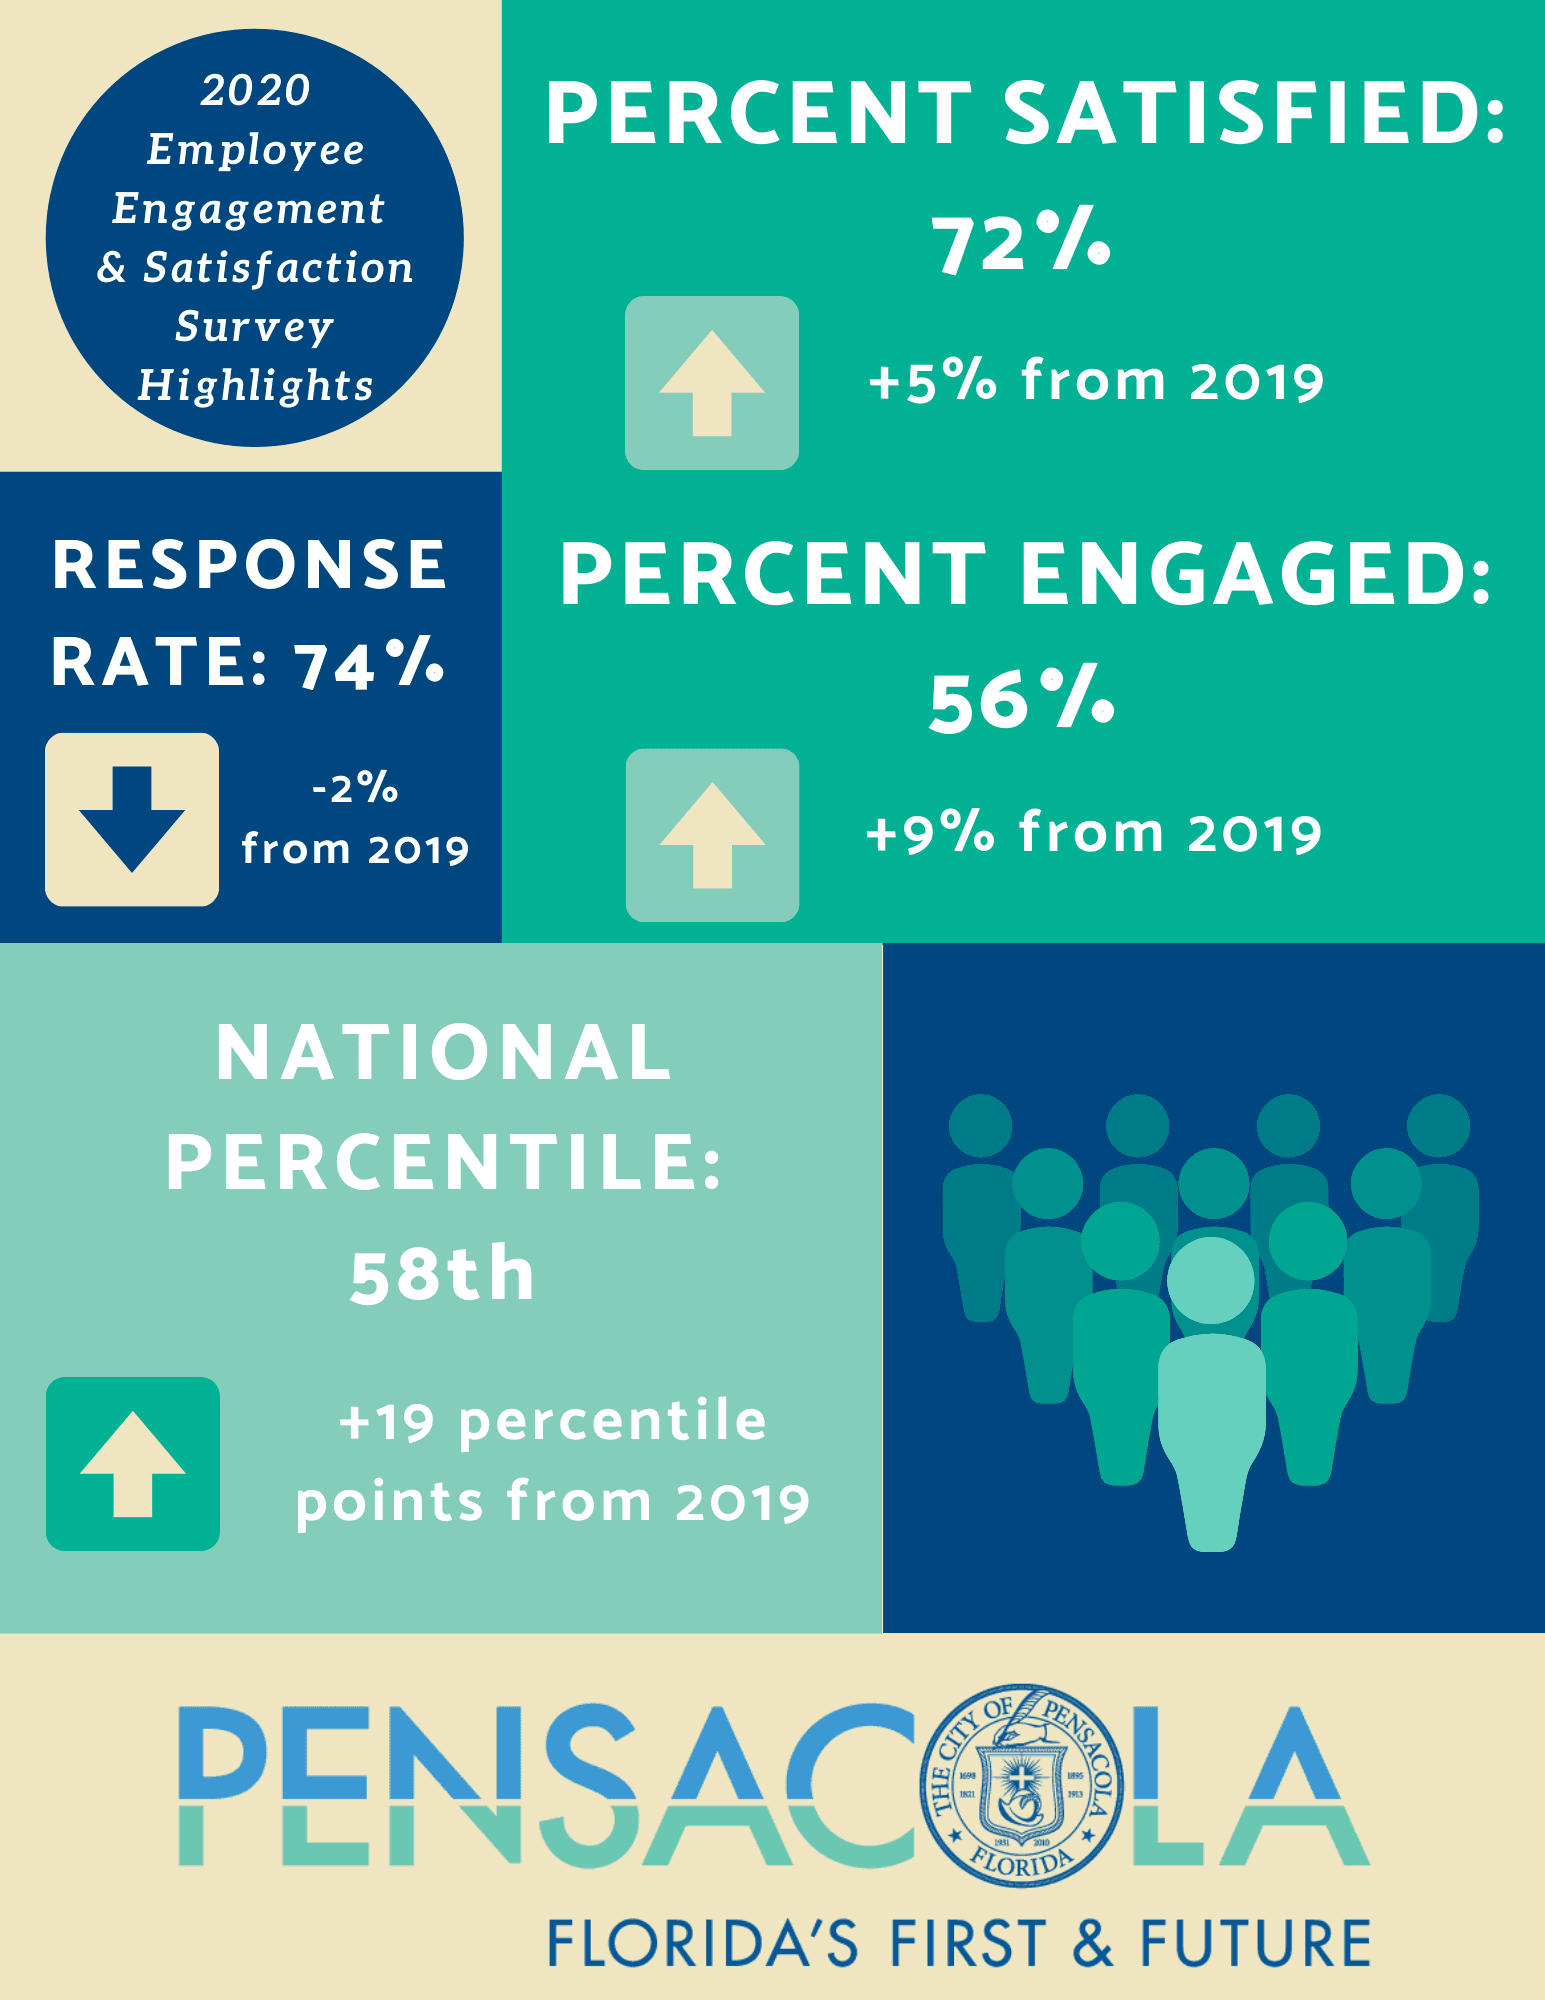 Employee Engagement Survey summary